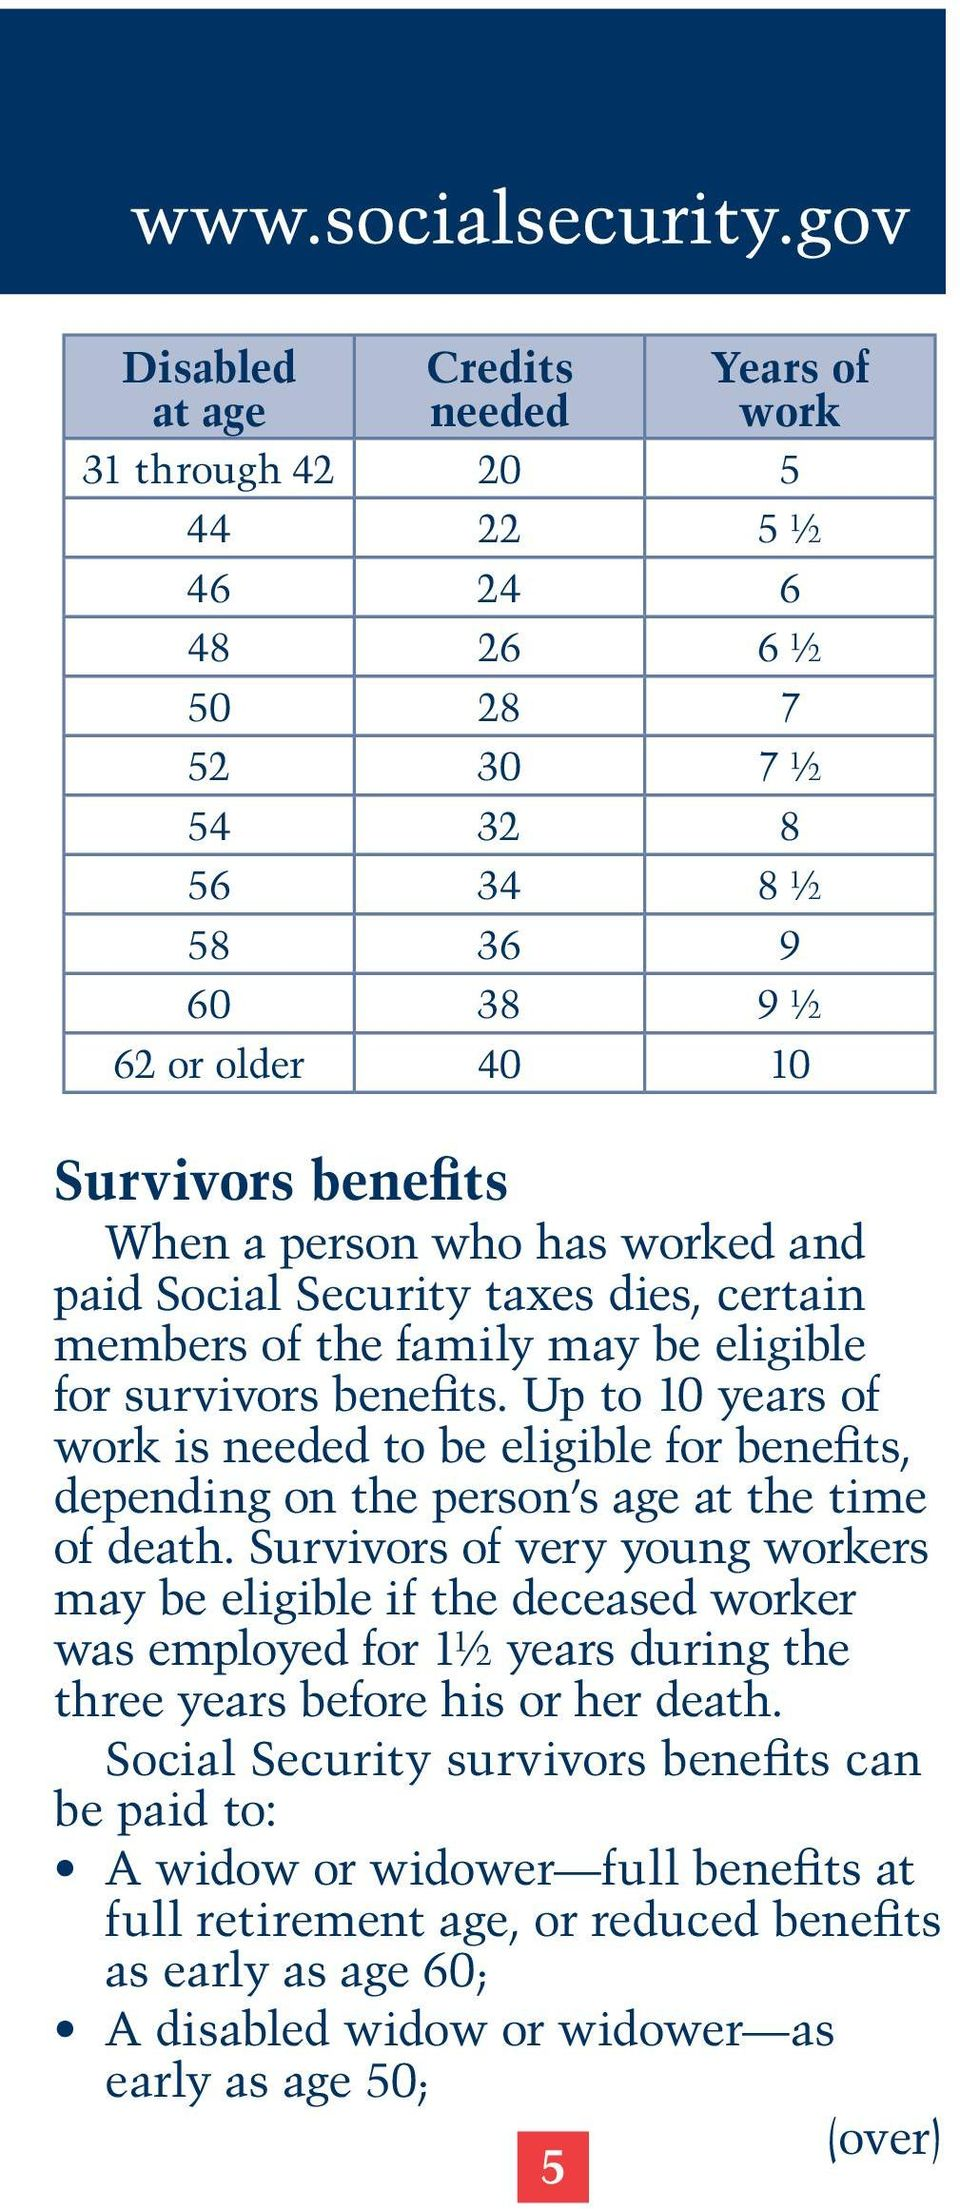 Up to 10 years of work is needed to be eligible for benefits, depending on the person s age at the time of death.